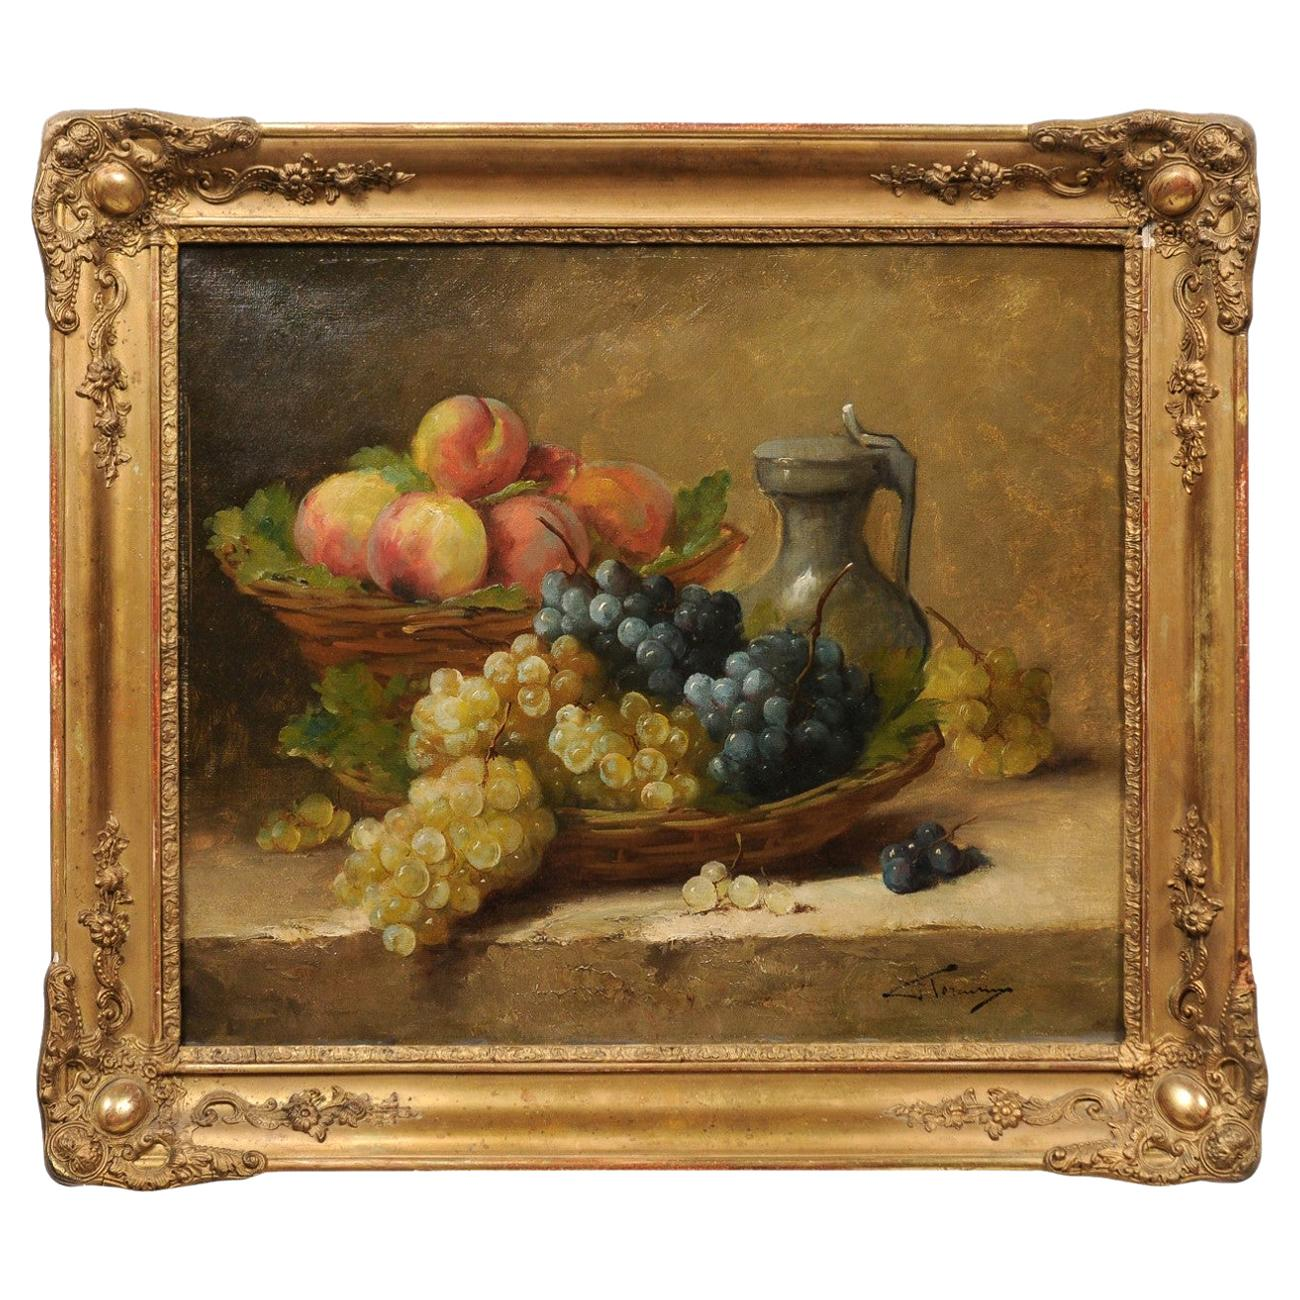 Italian 19th Century Still-Life Oil Painting Depicting Fruits, in Giltwood Frame